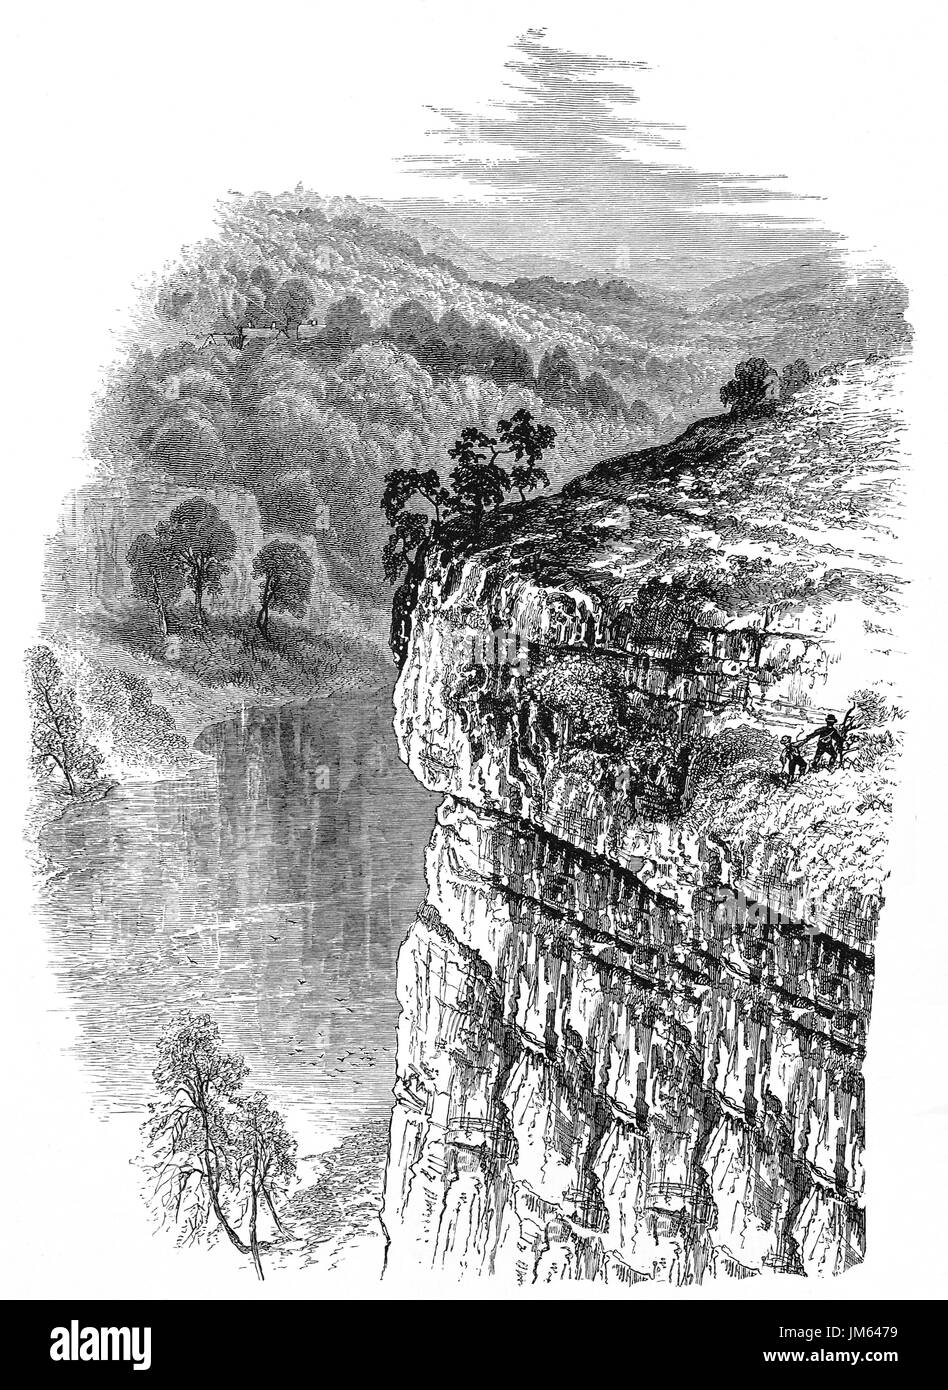 1870: Walkers on cliffs overlooking Lytton or Litton Vale  in the Peak District of Derbyshire, England Stock Photo